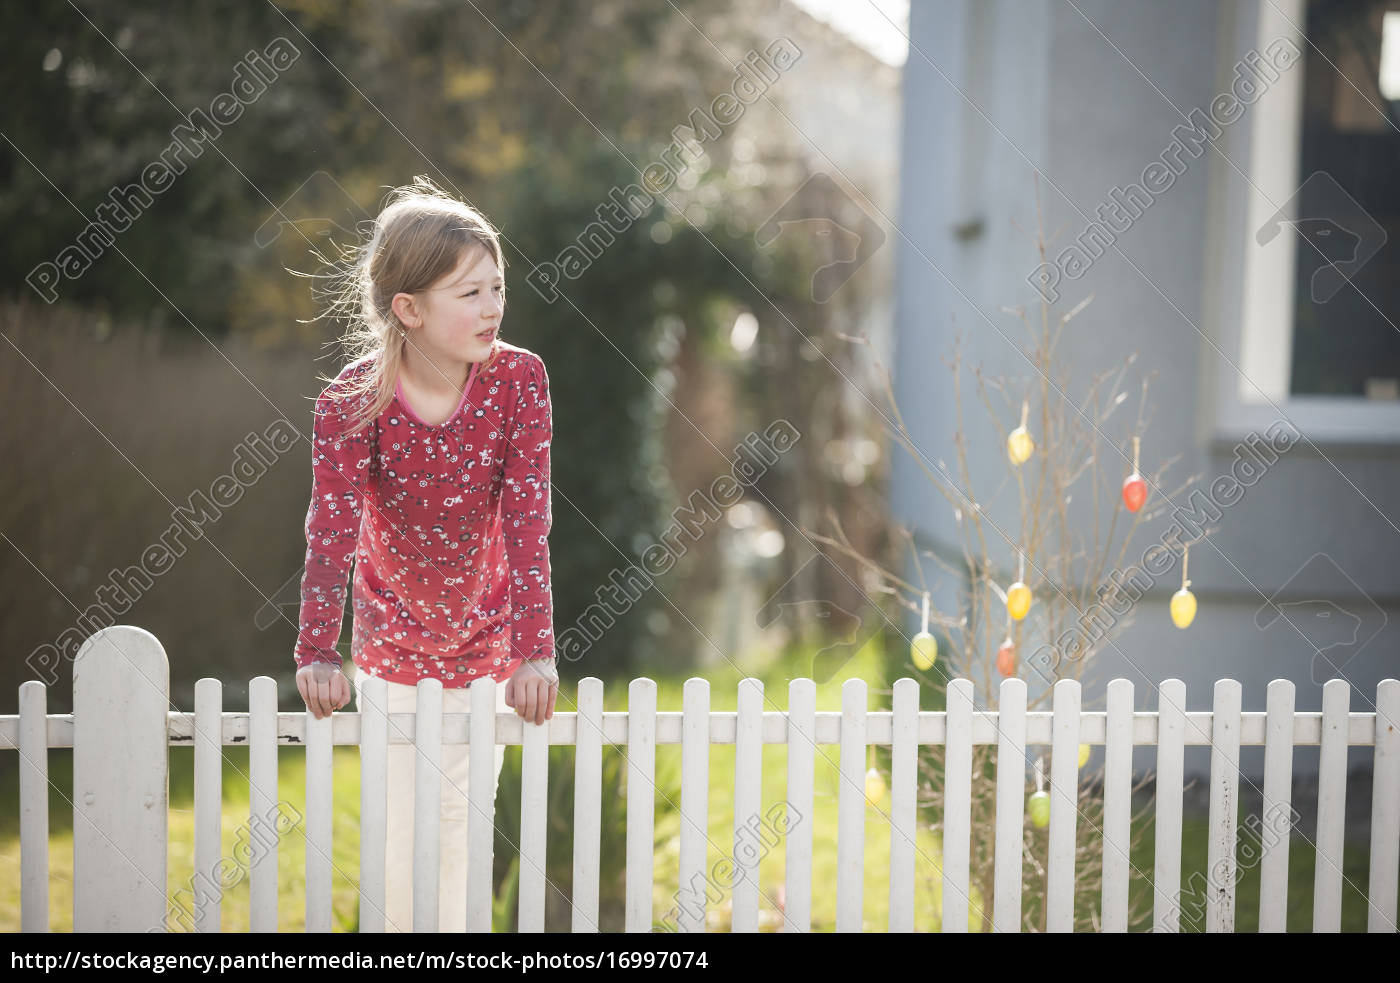 girl, at, garden, fence, glancing, sideways - 16997074